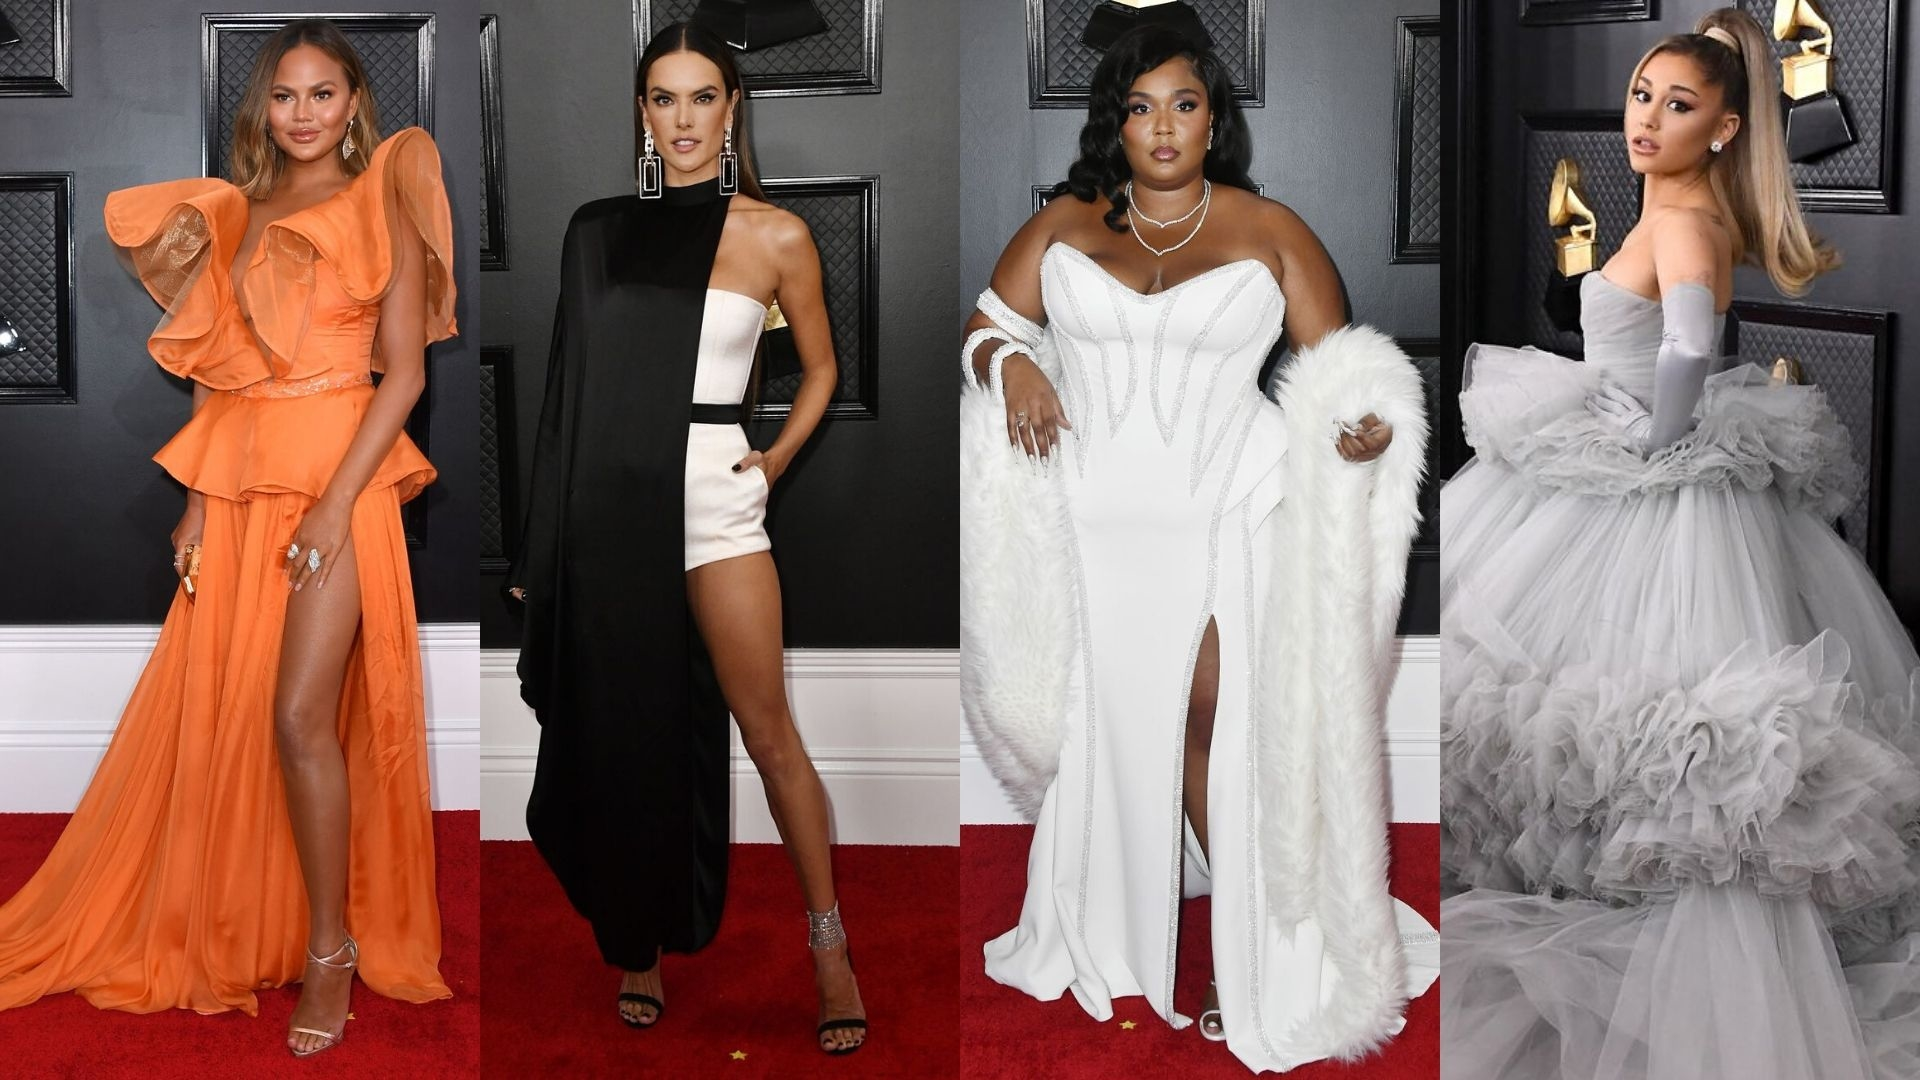 Grammy Awards 2020 | The Best Looks From The Red Carpet